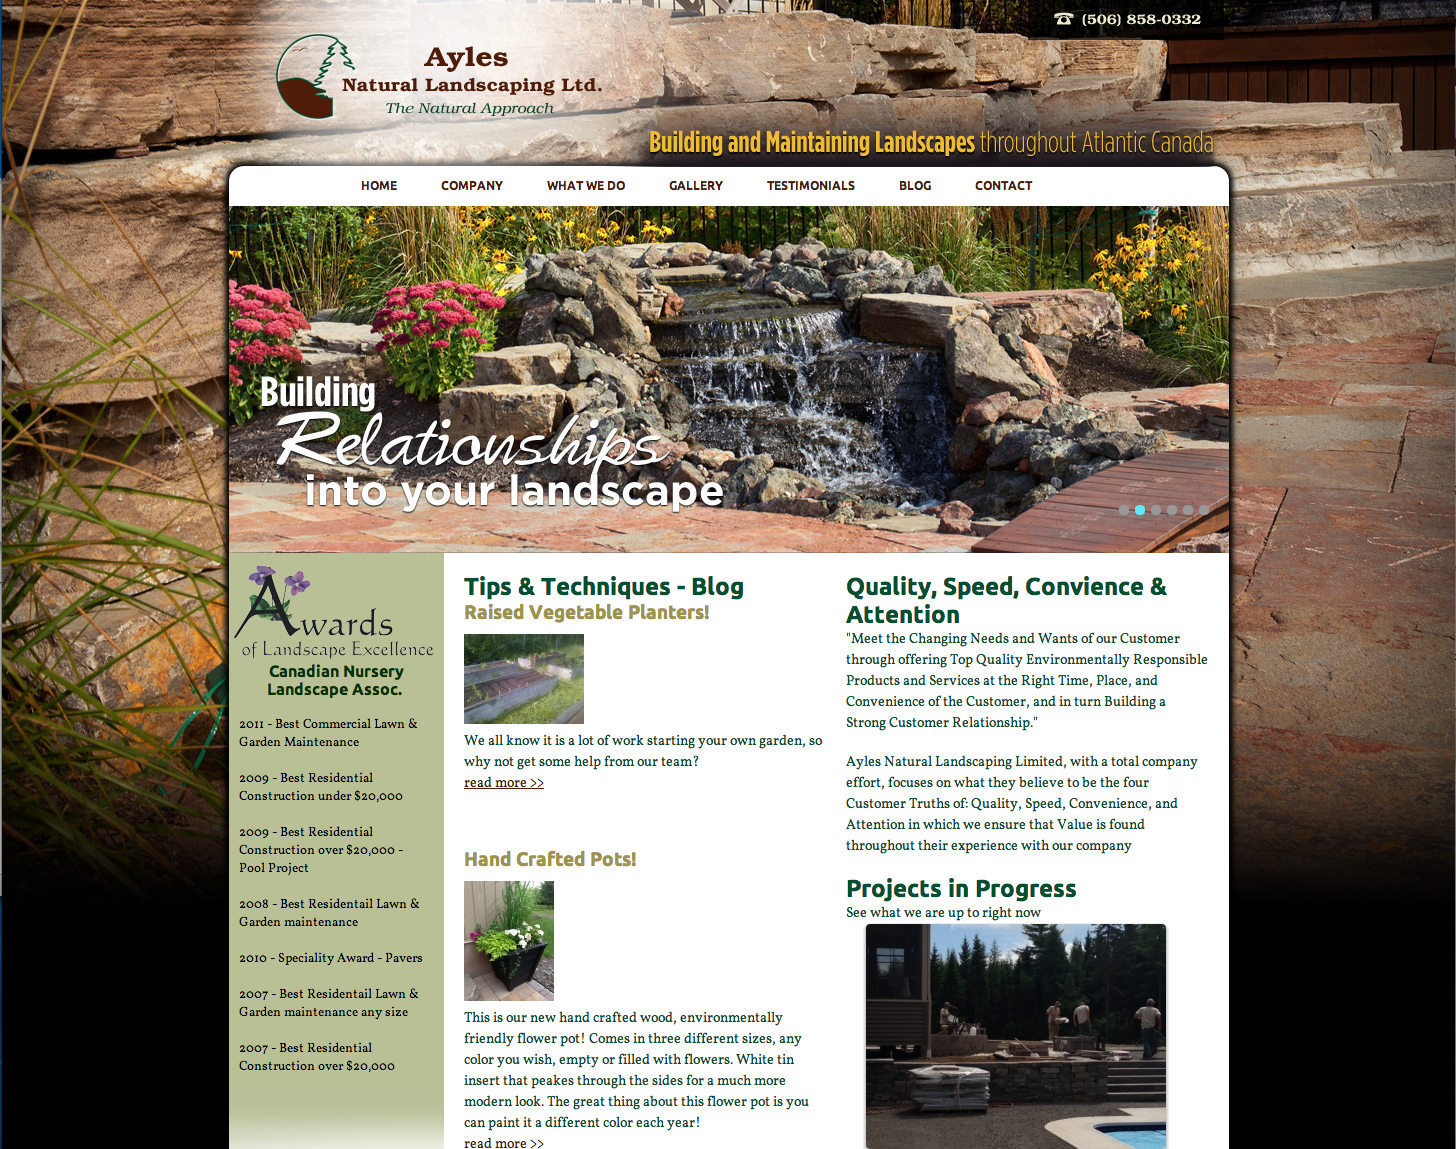 Ayles Natural Landscaping